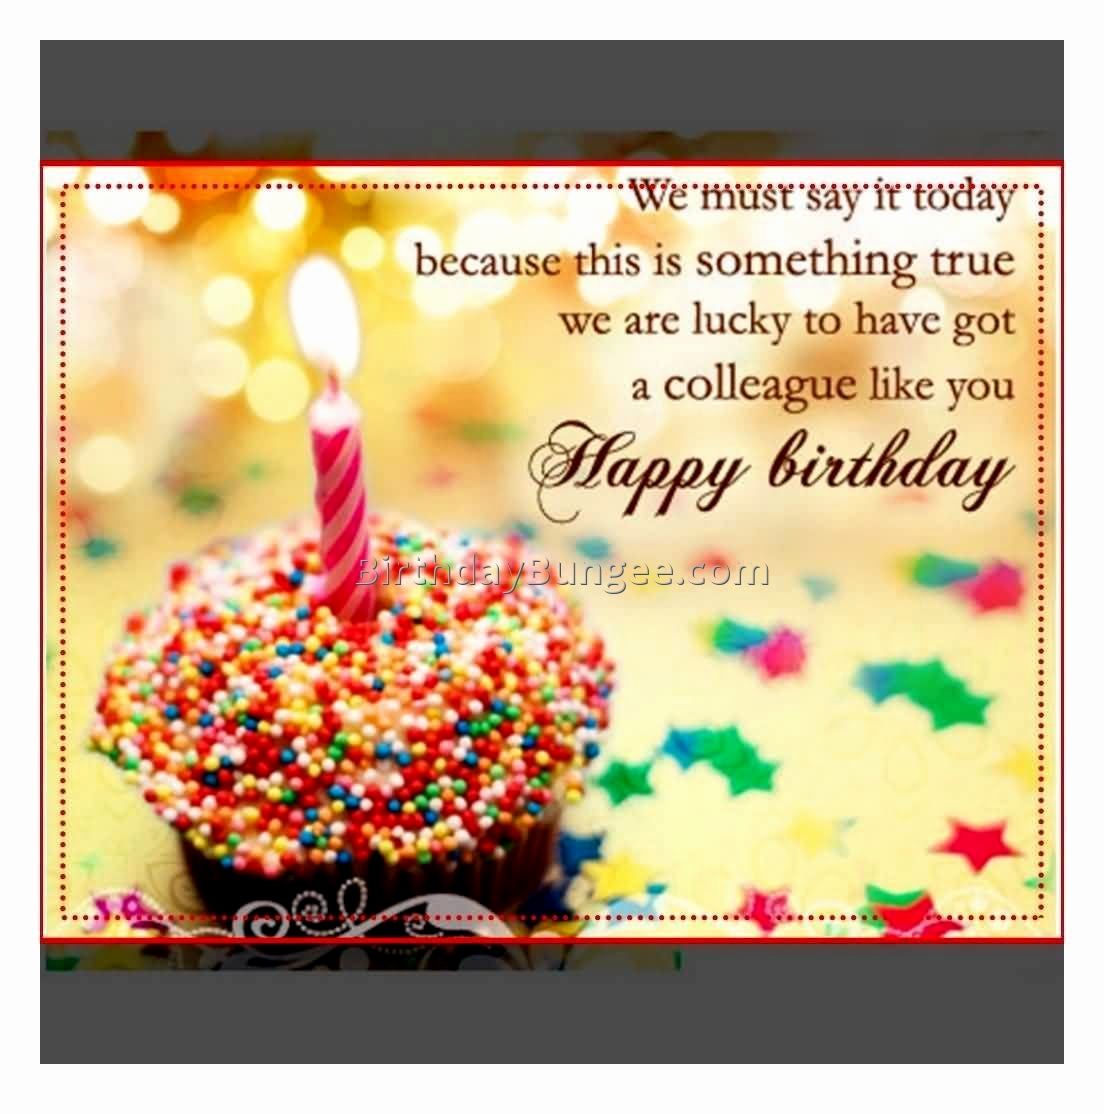 birthday wishes for coworker card ; happy-birthday-wishes-for-coworker-awesome-happy-birthday-wishes-glamorous-happy-birthday-wishes-coworker